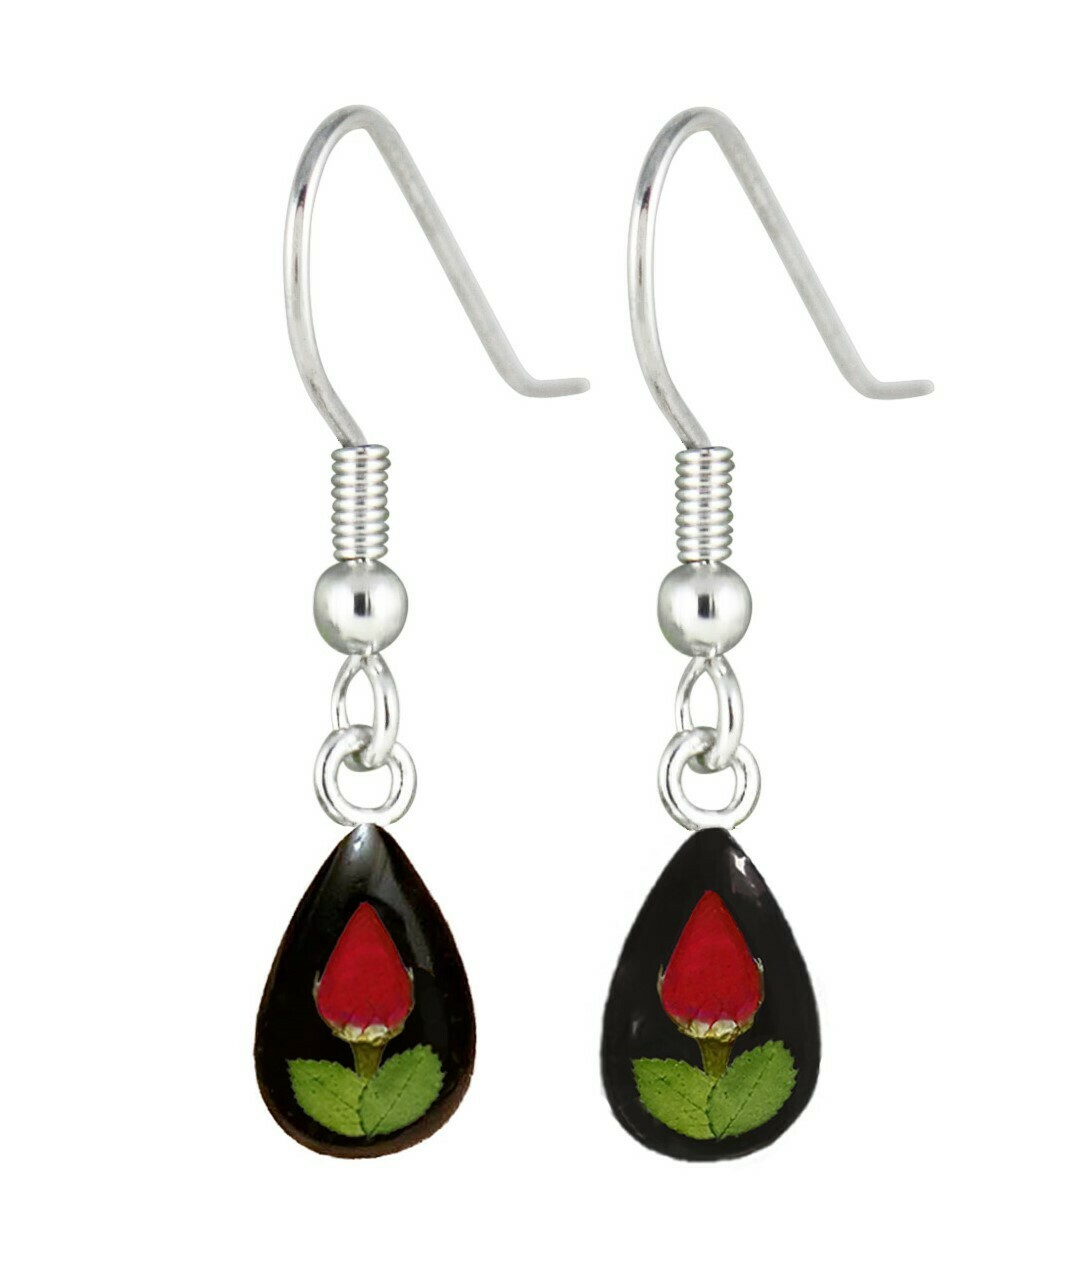 Rose, Teardrop Hanging Earrings, Black Banckground.